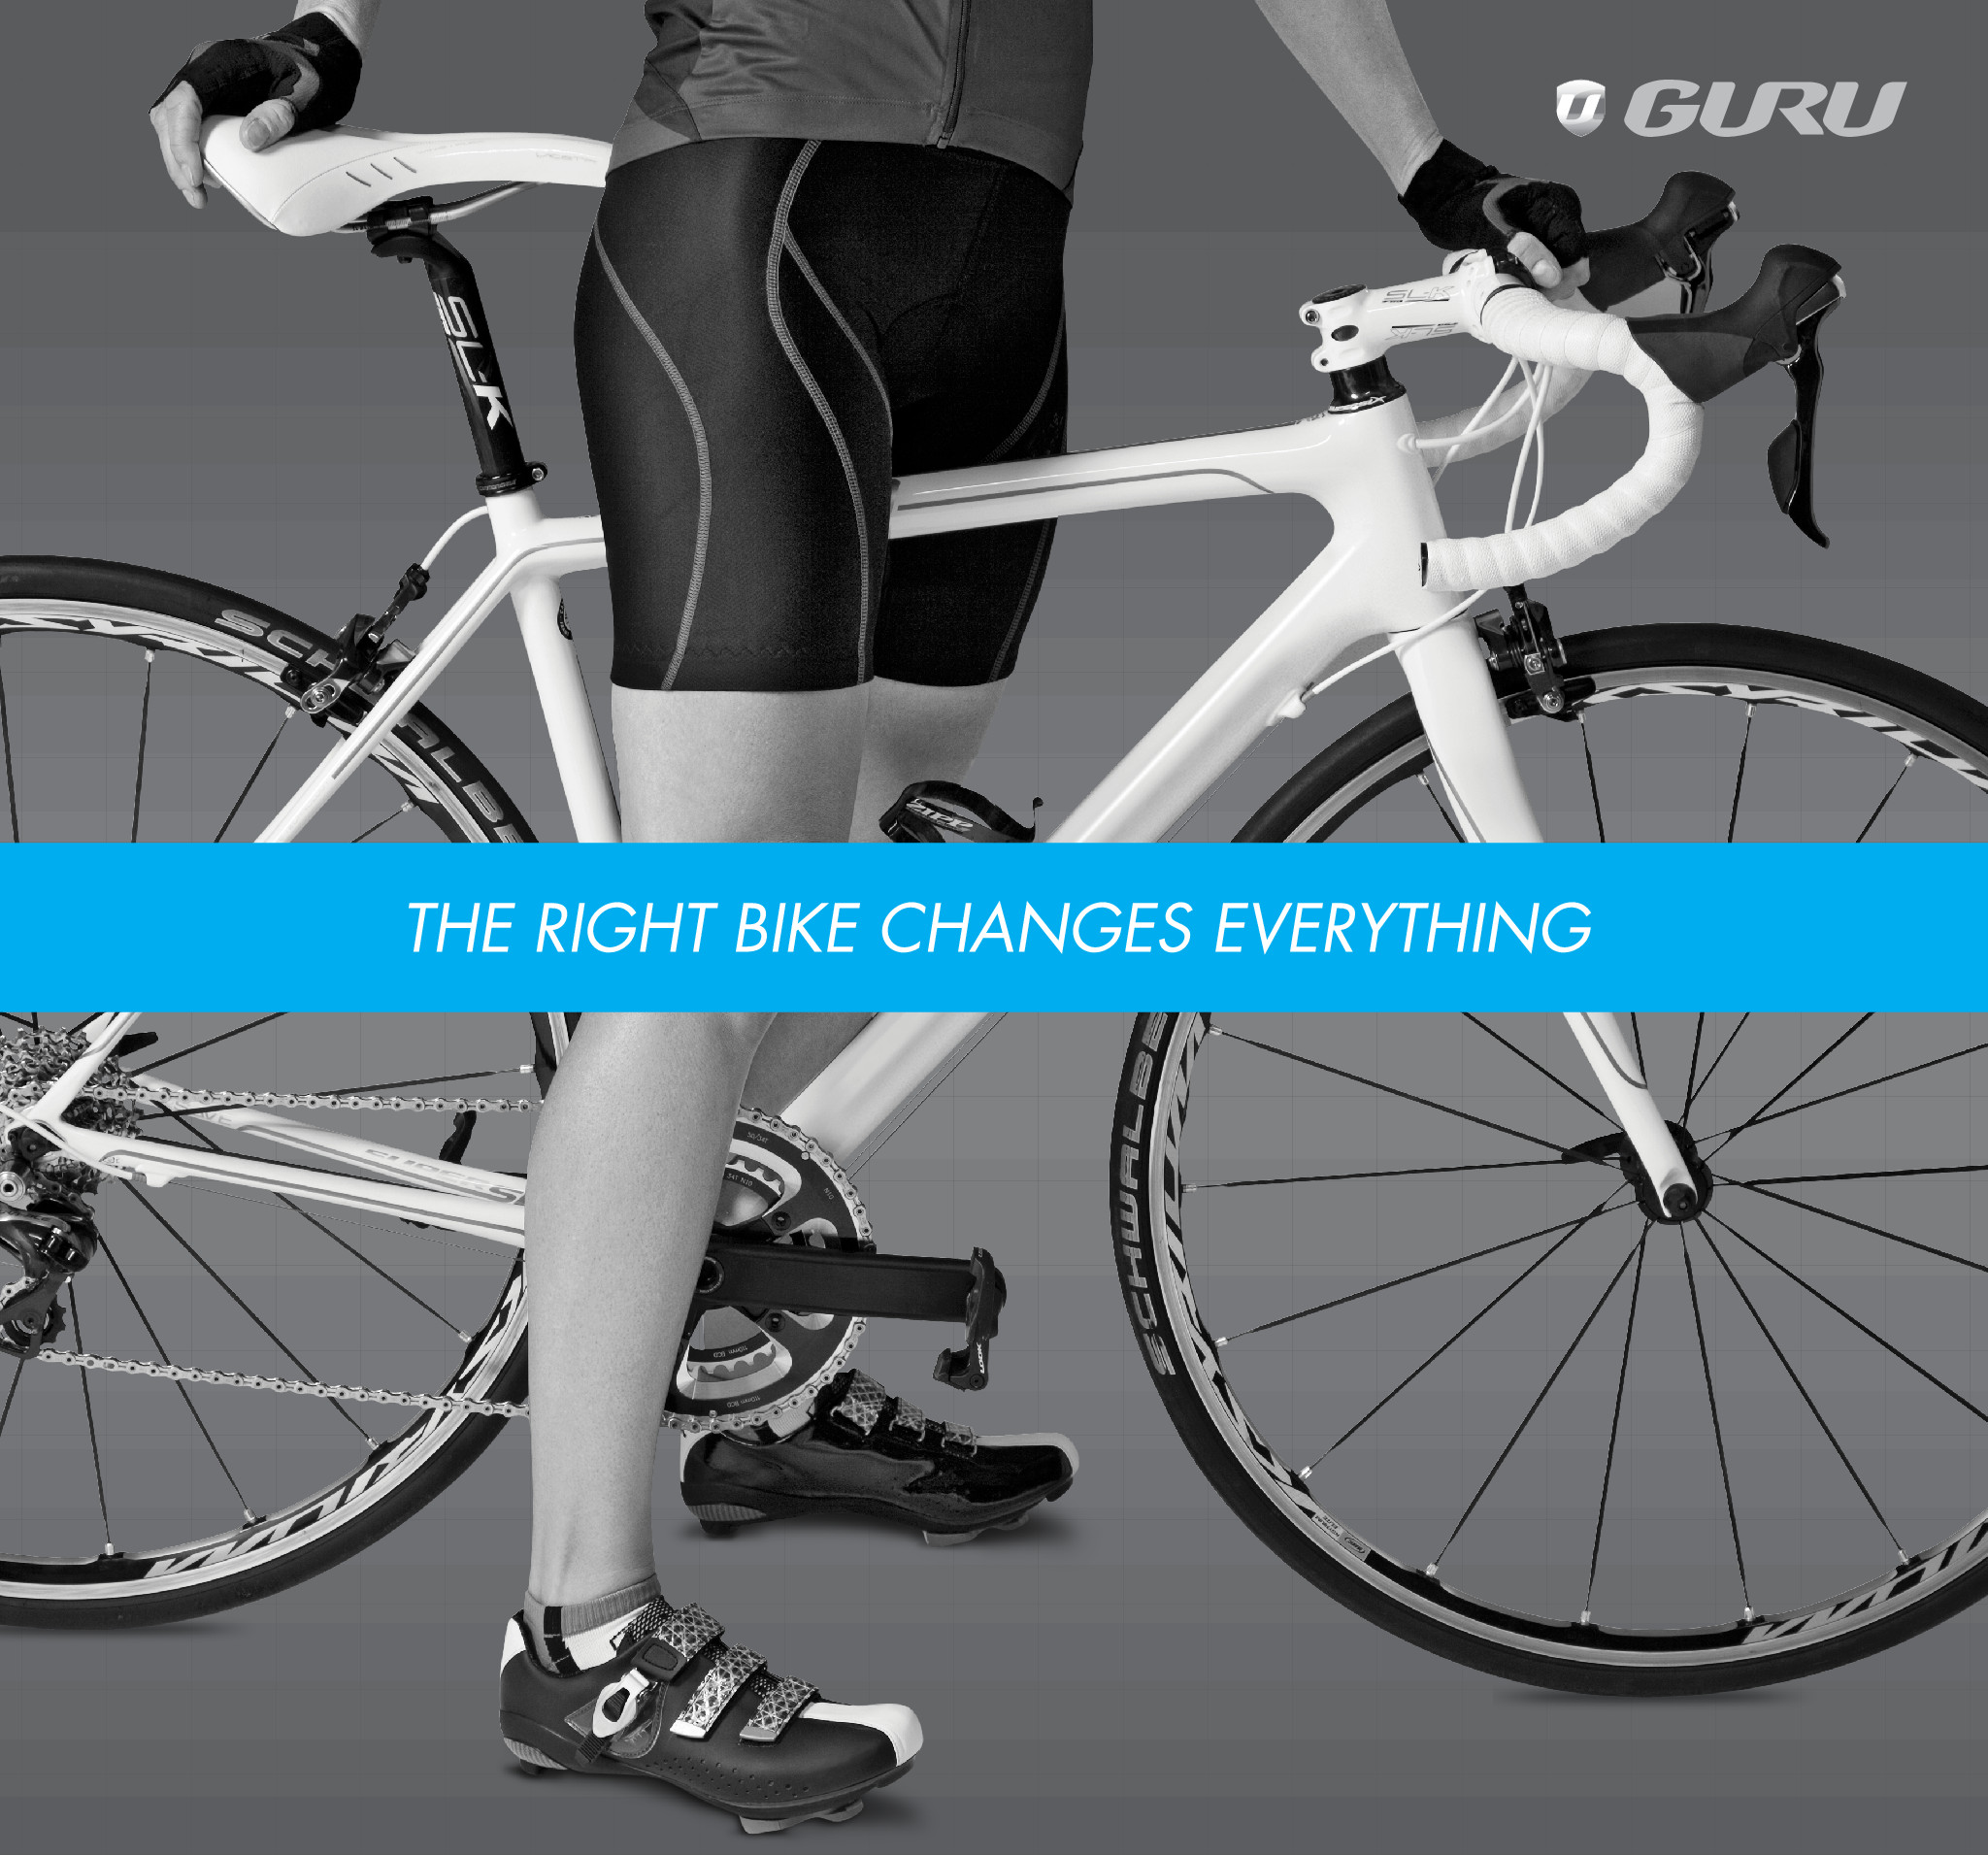 BikeBiz announces new European partnership between Ten-Point and GURU Bike Fitting System